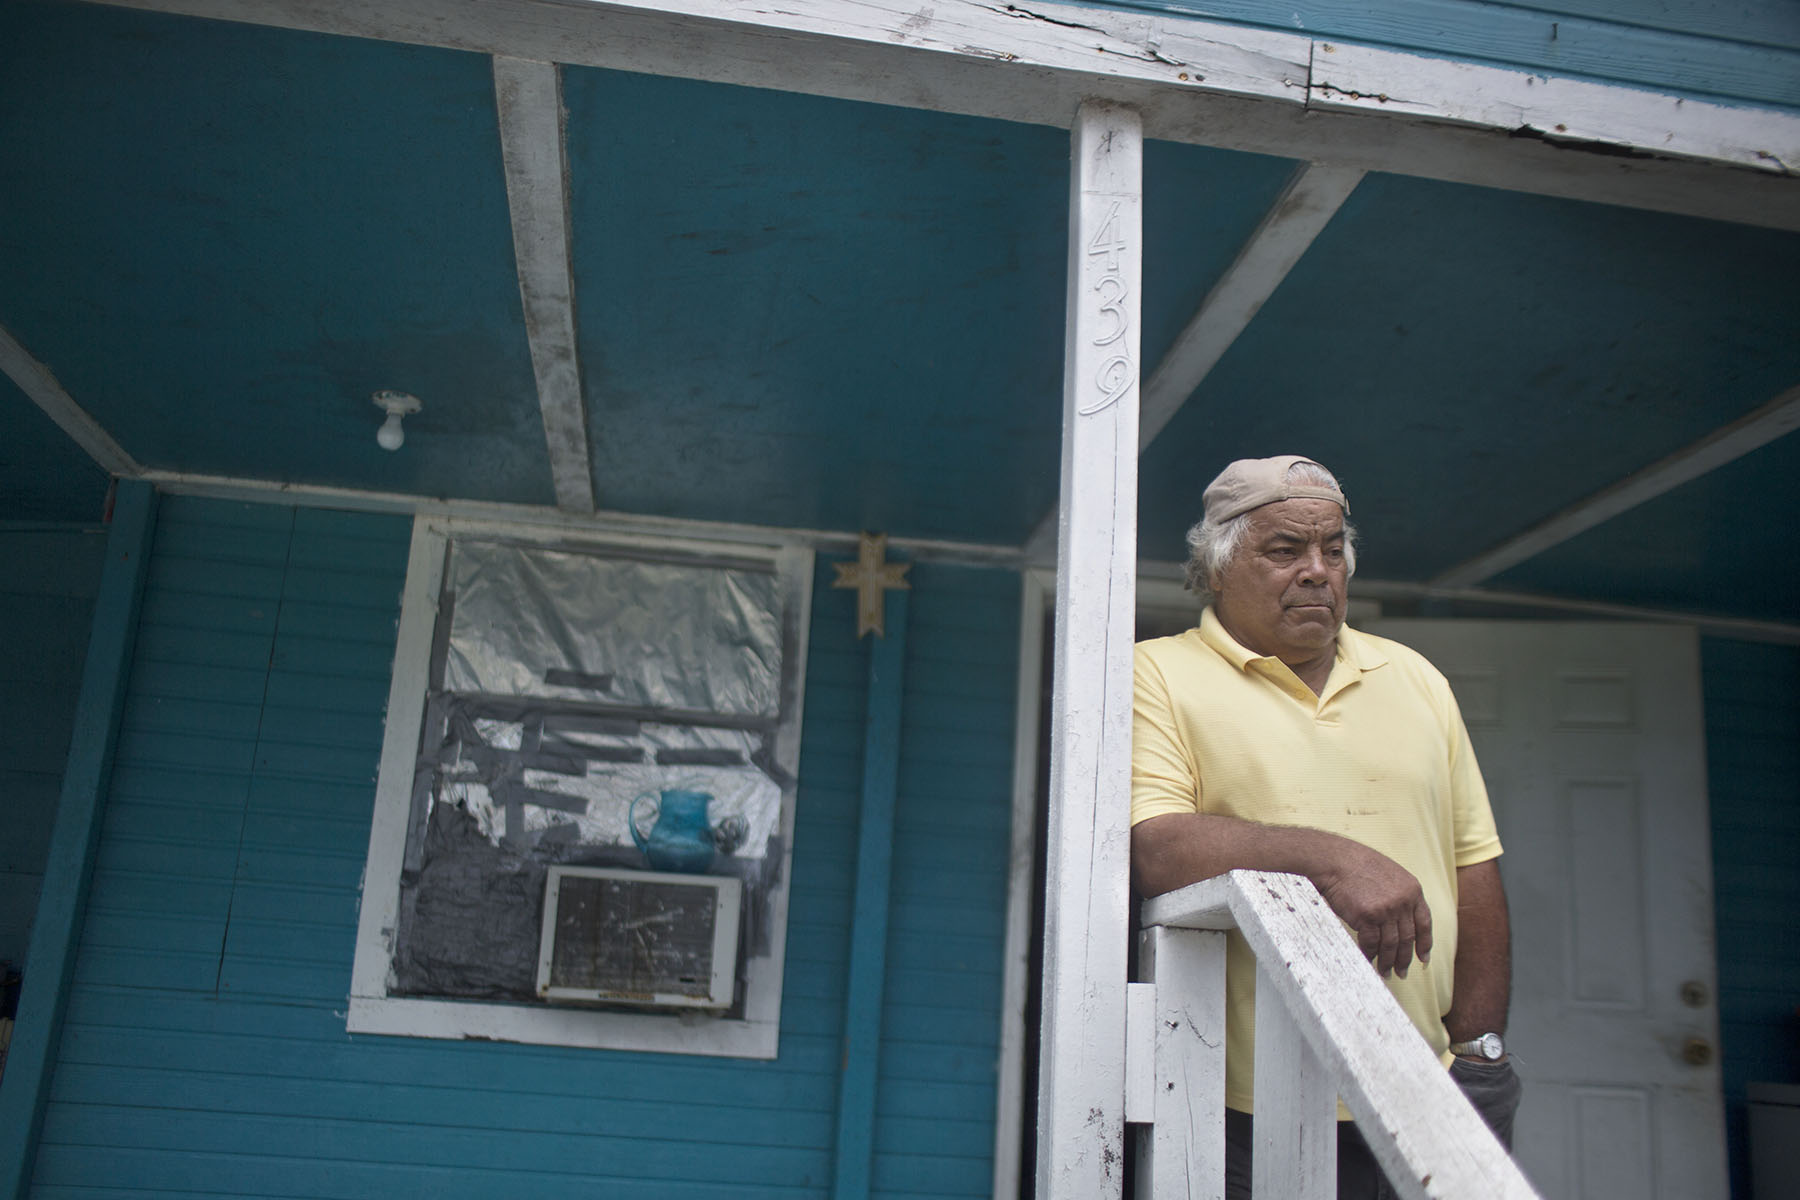 Hilton Chaisson, 68, an oyster fisherman and shrimper who lives in a low-lying house on the island.